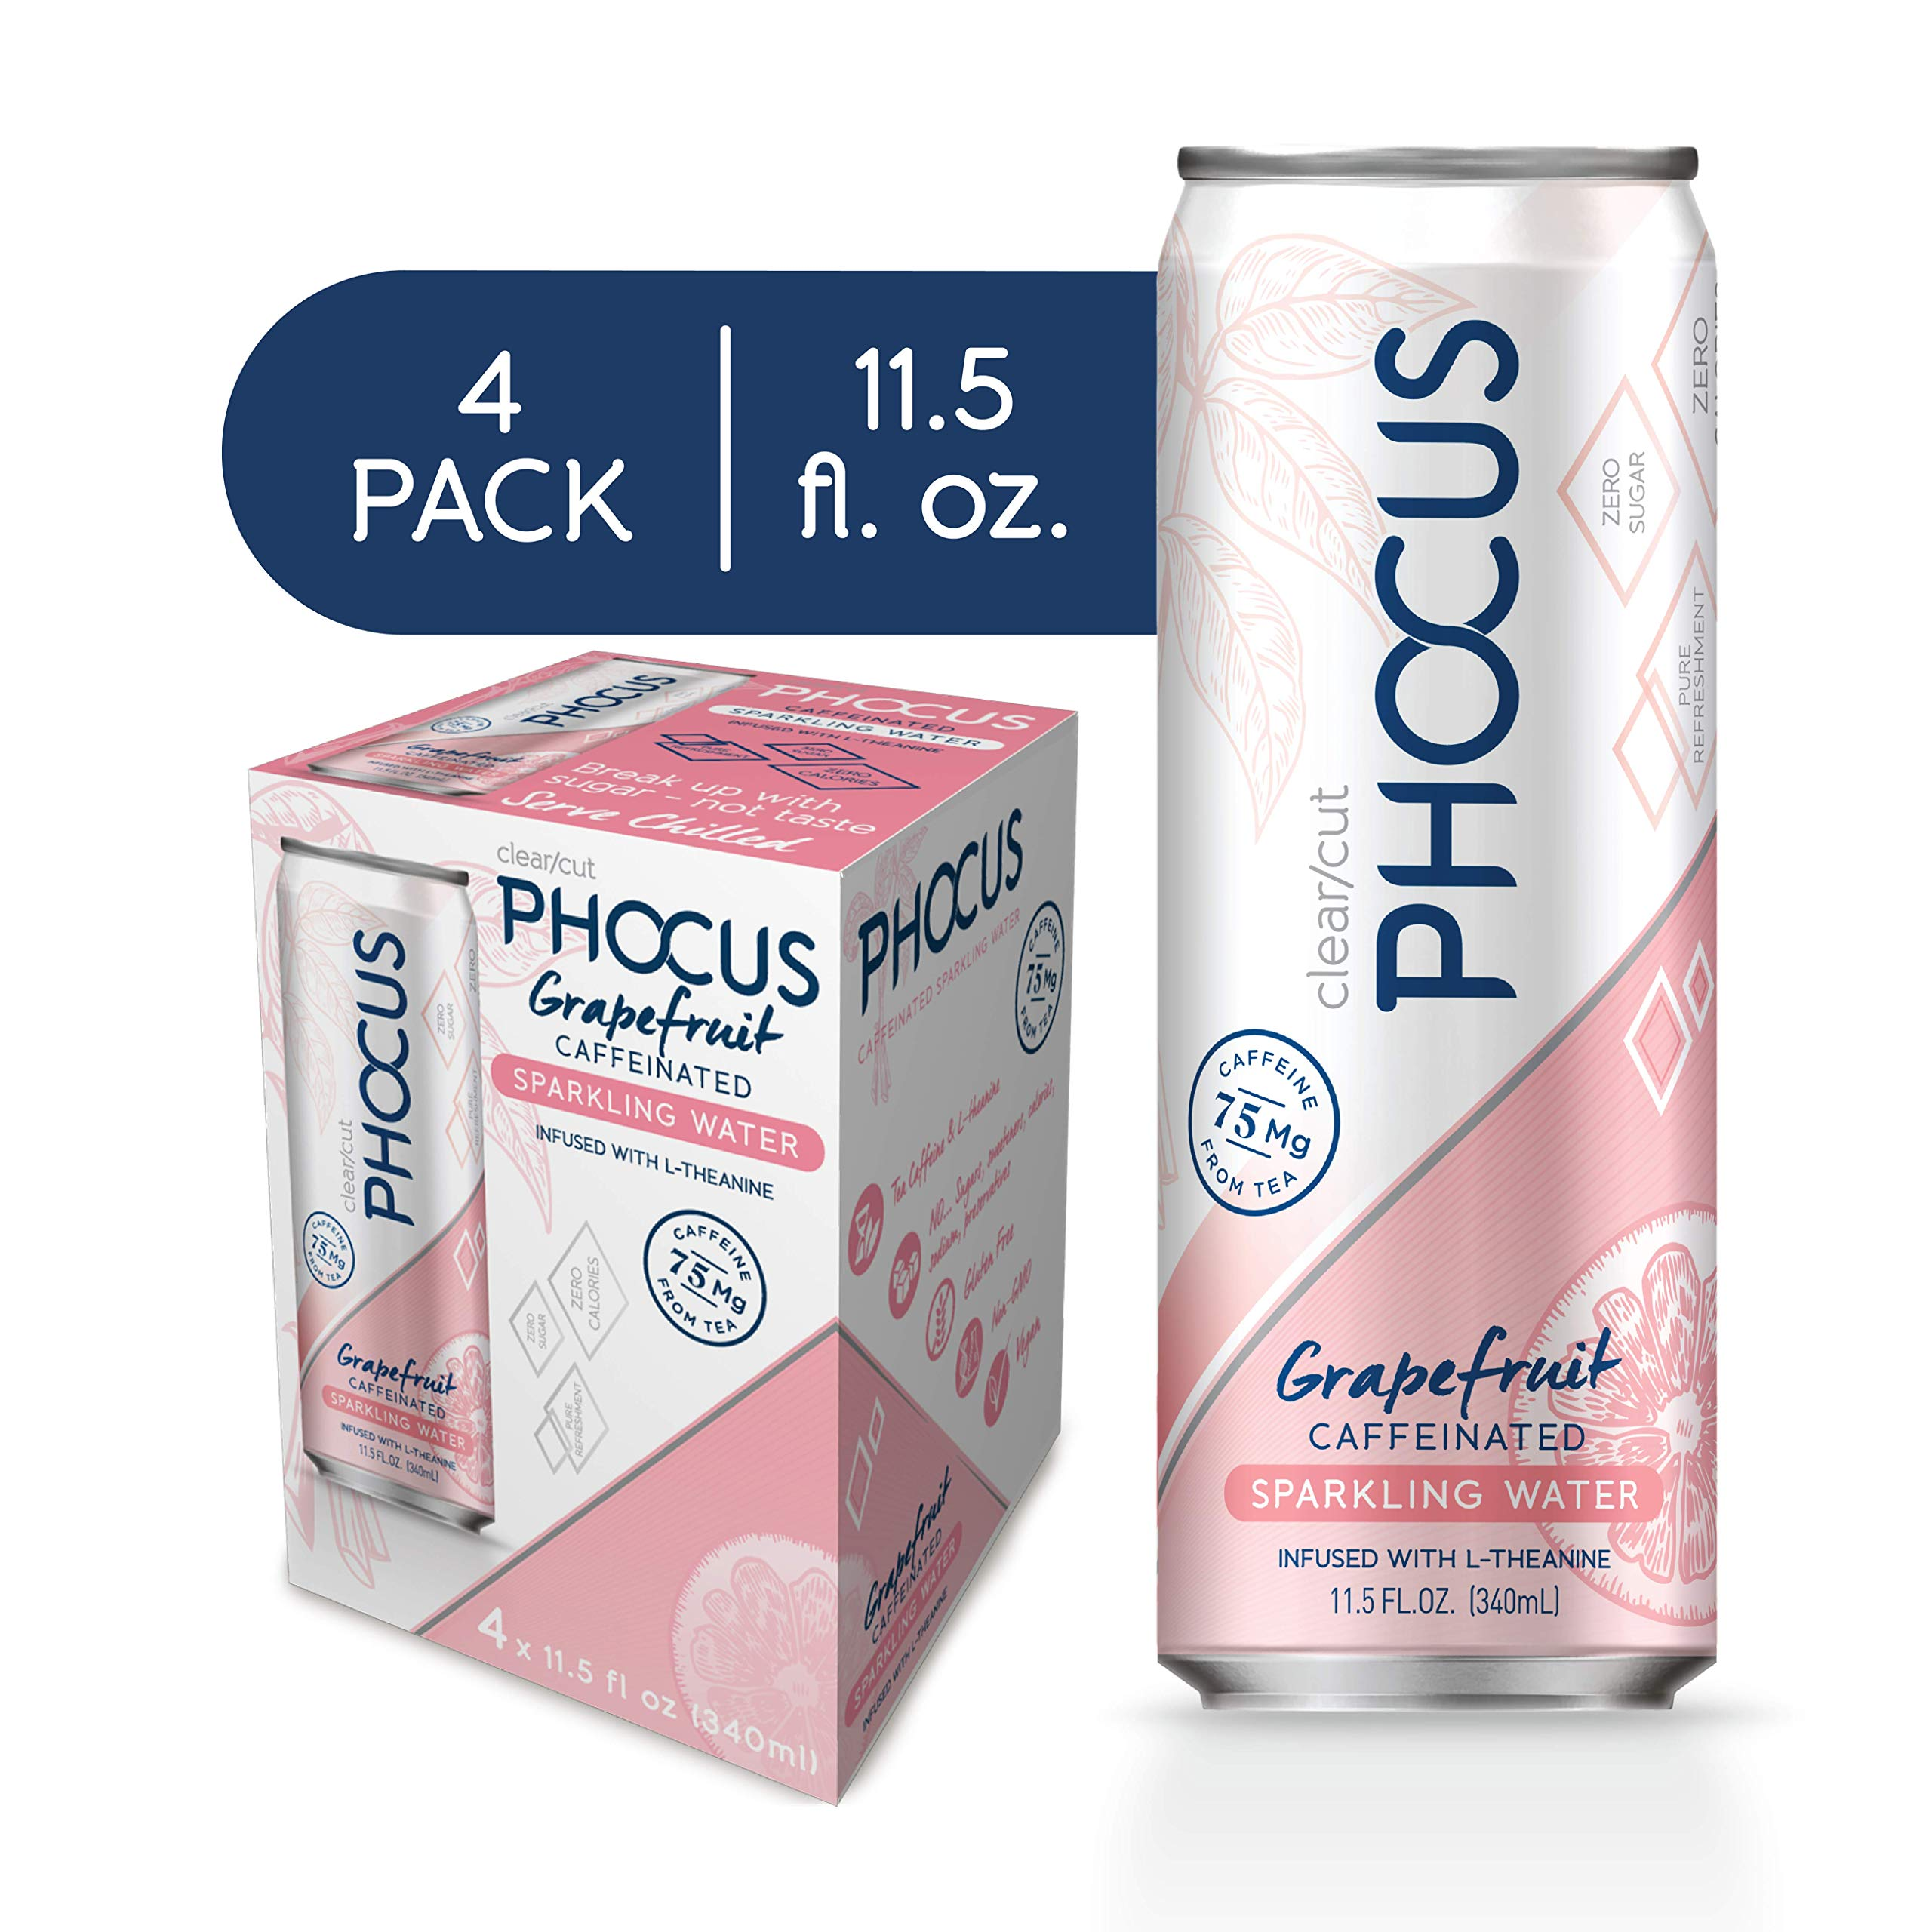 Phocus Naturally Energizing Caffeinated Sparkling Water, Grapefruit, 11.5 Ounce Cans, 4 Pack